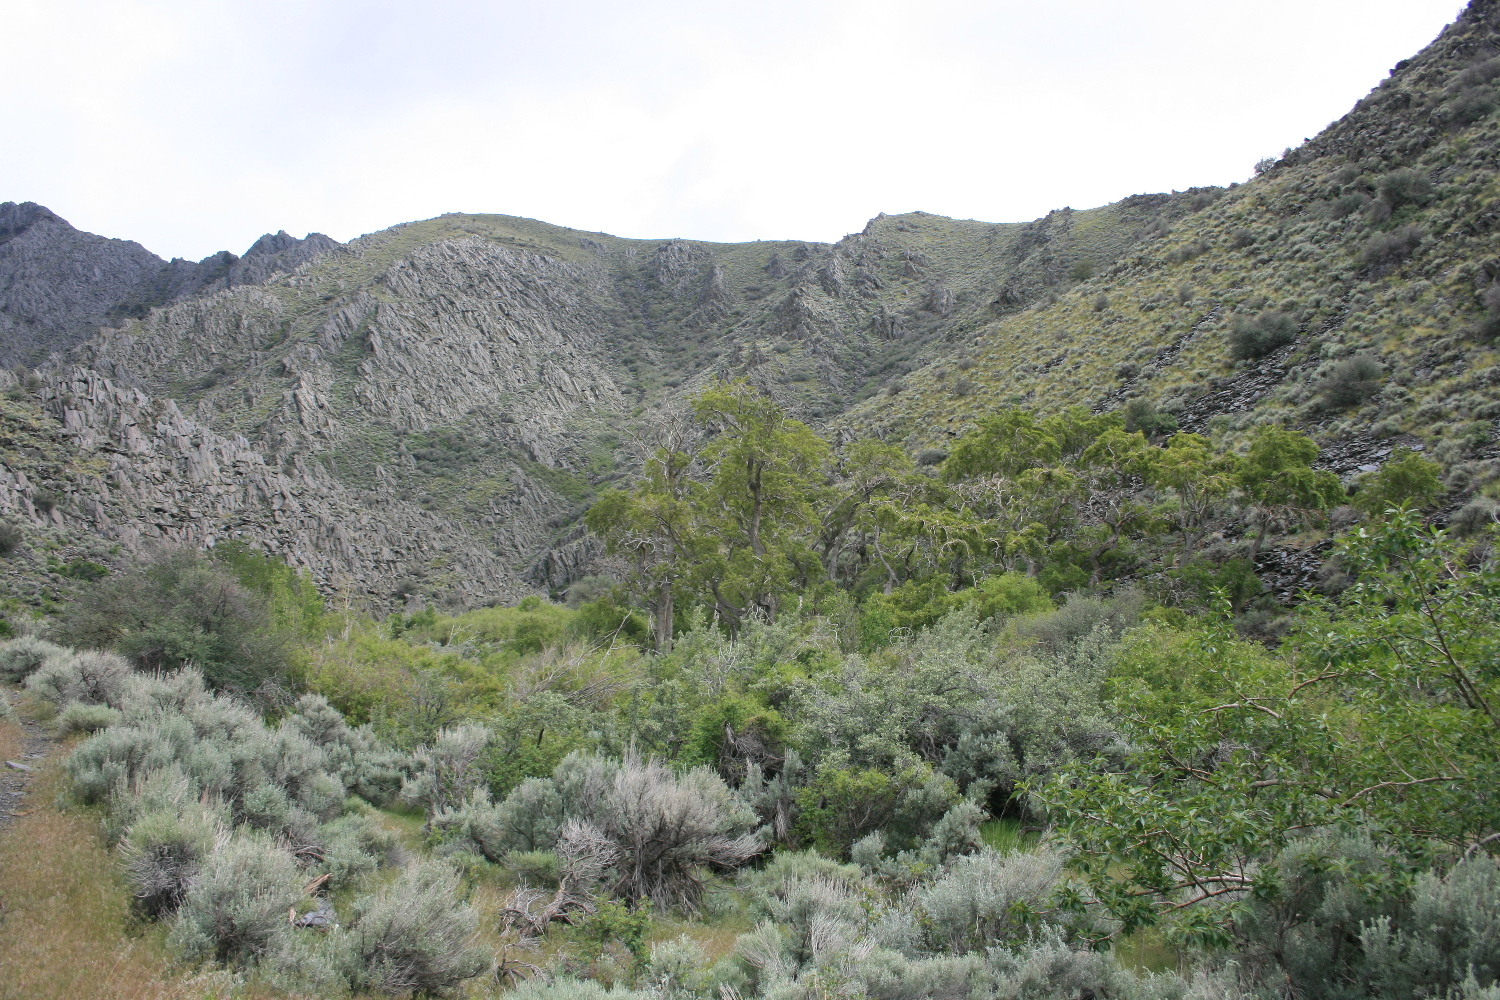 View from near the trailhead. The falls are beyond the prominent ridge coming in from the left in the middle distance.